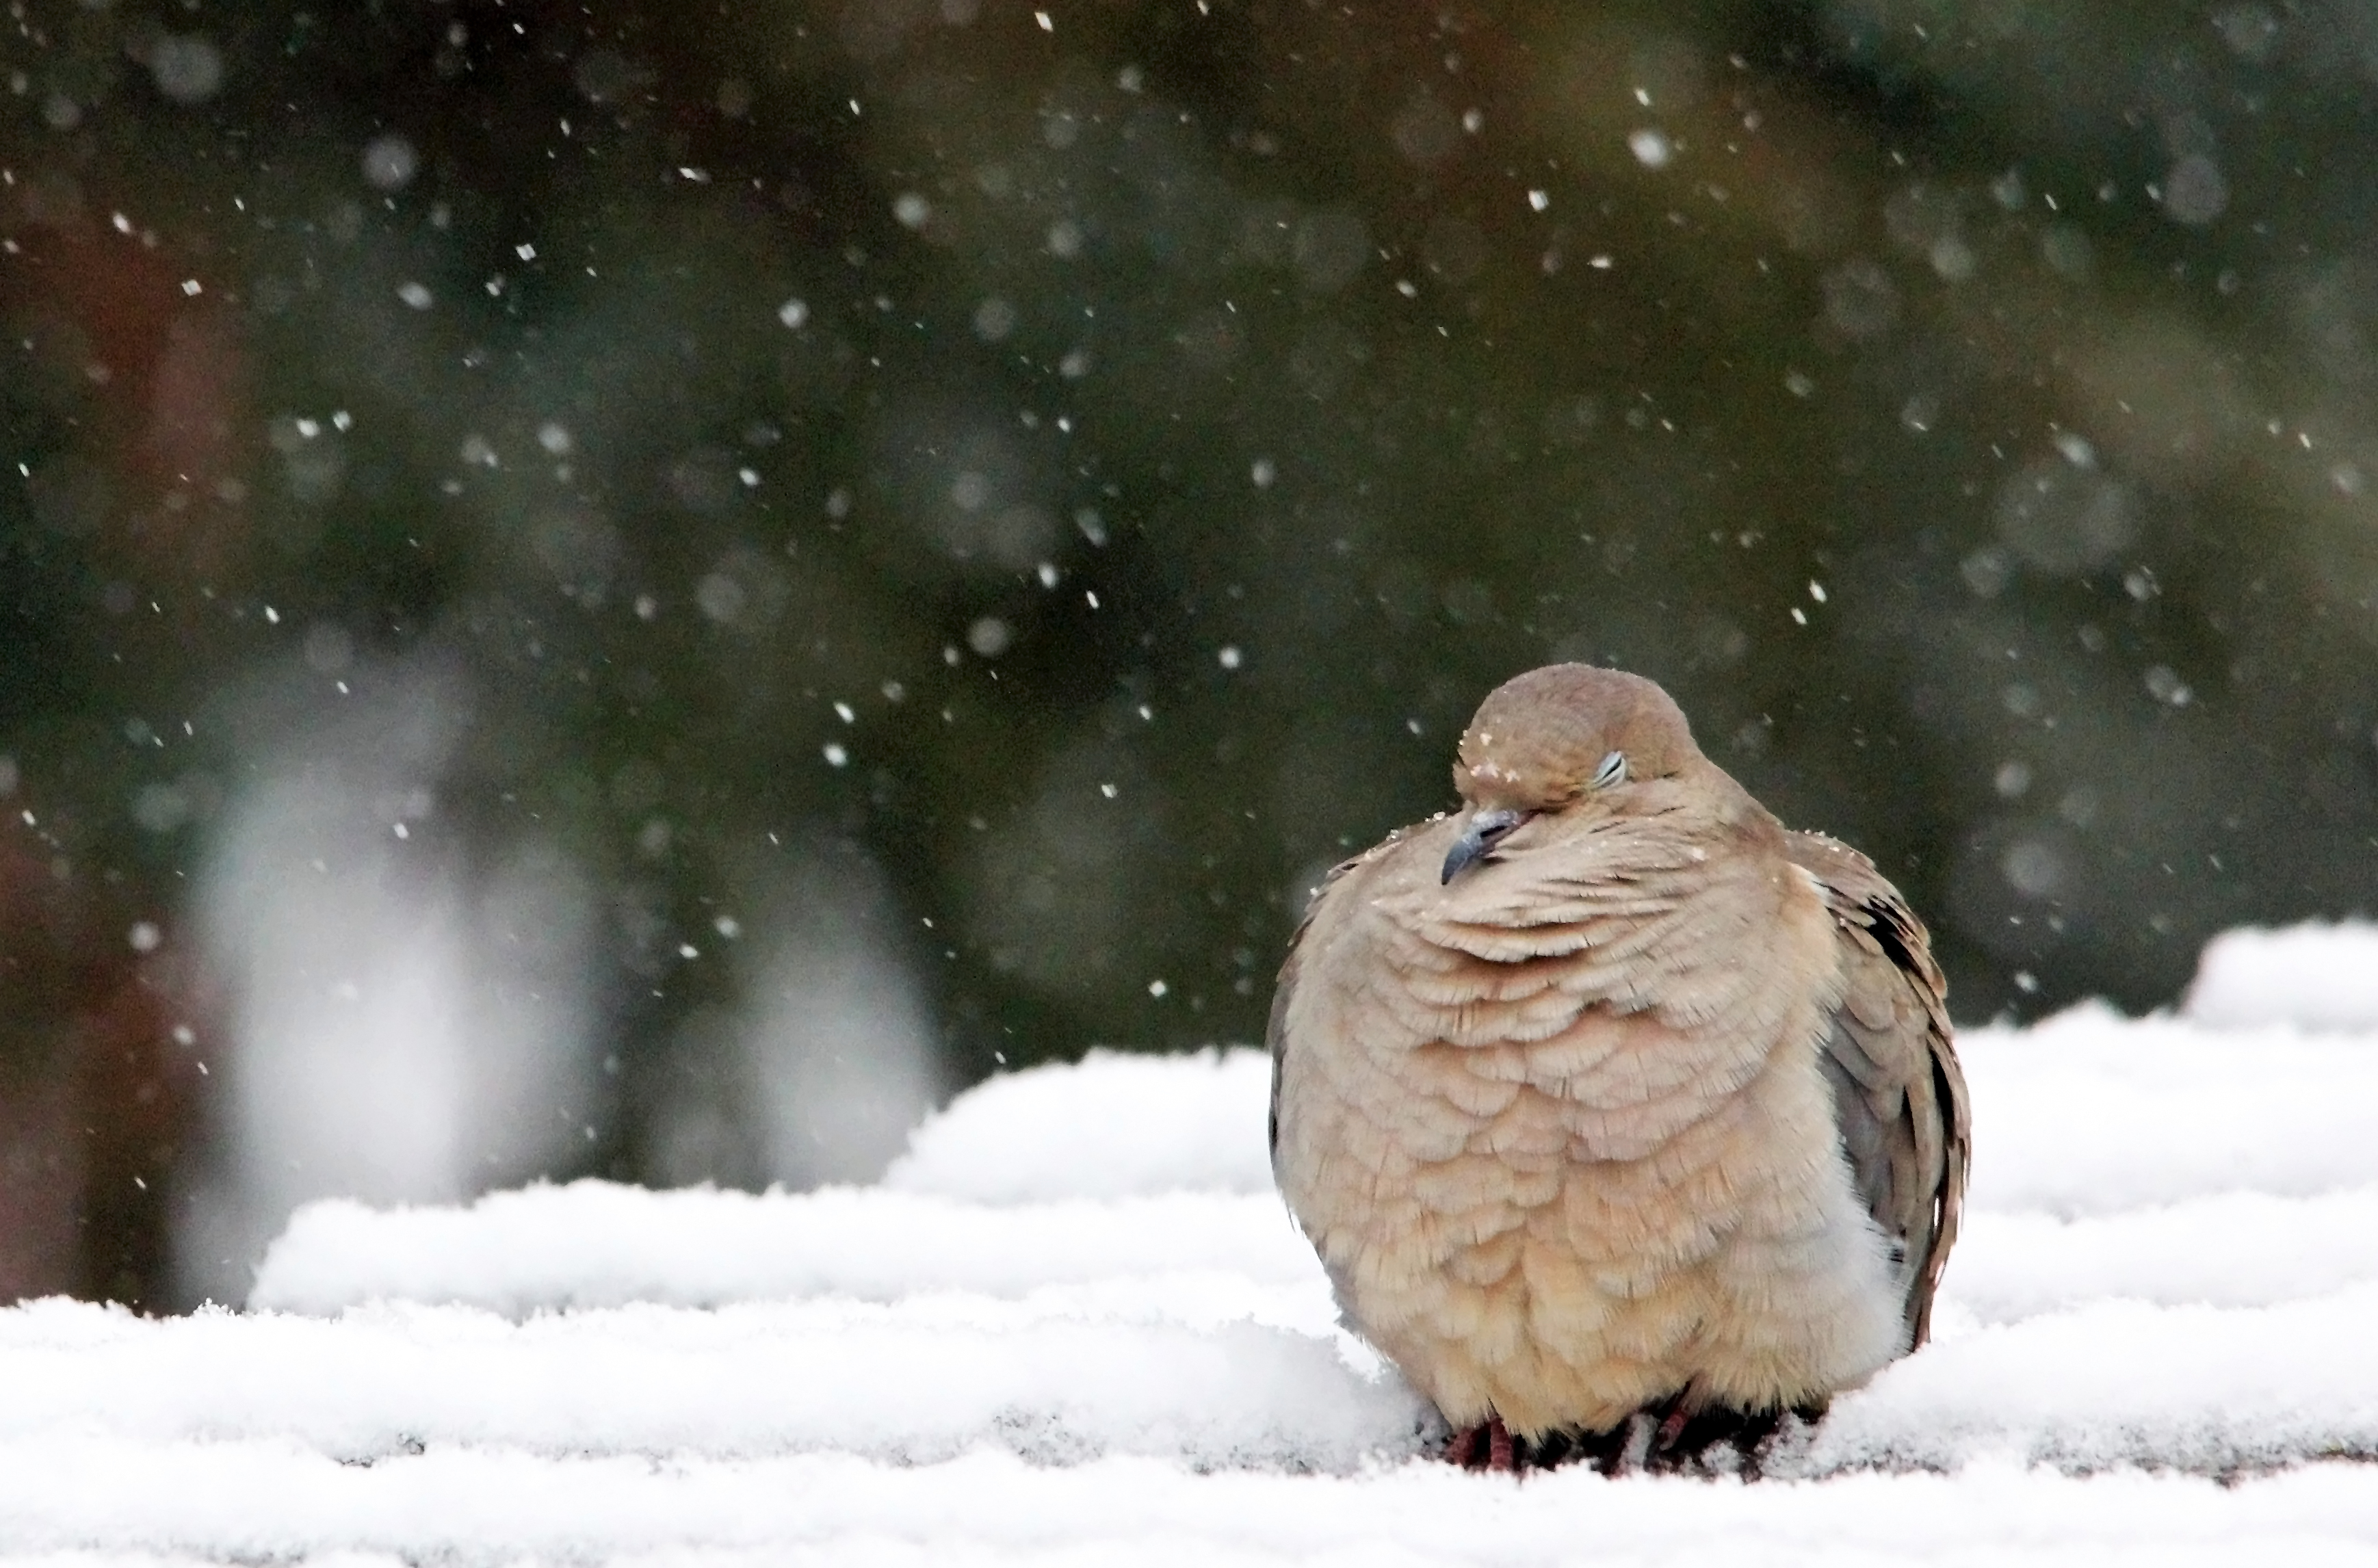 dove brr it's cold snow